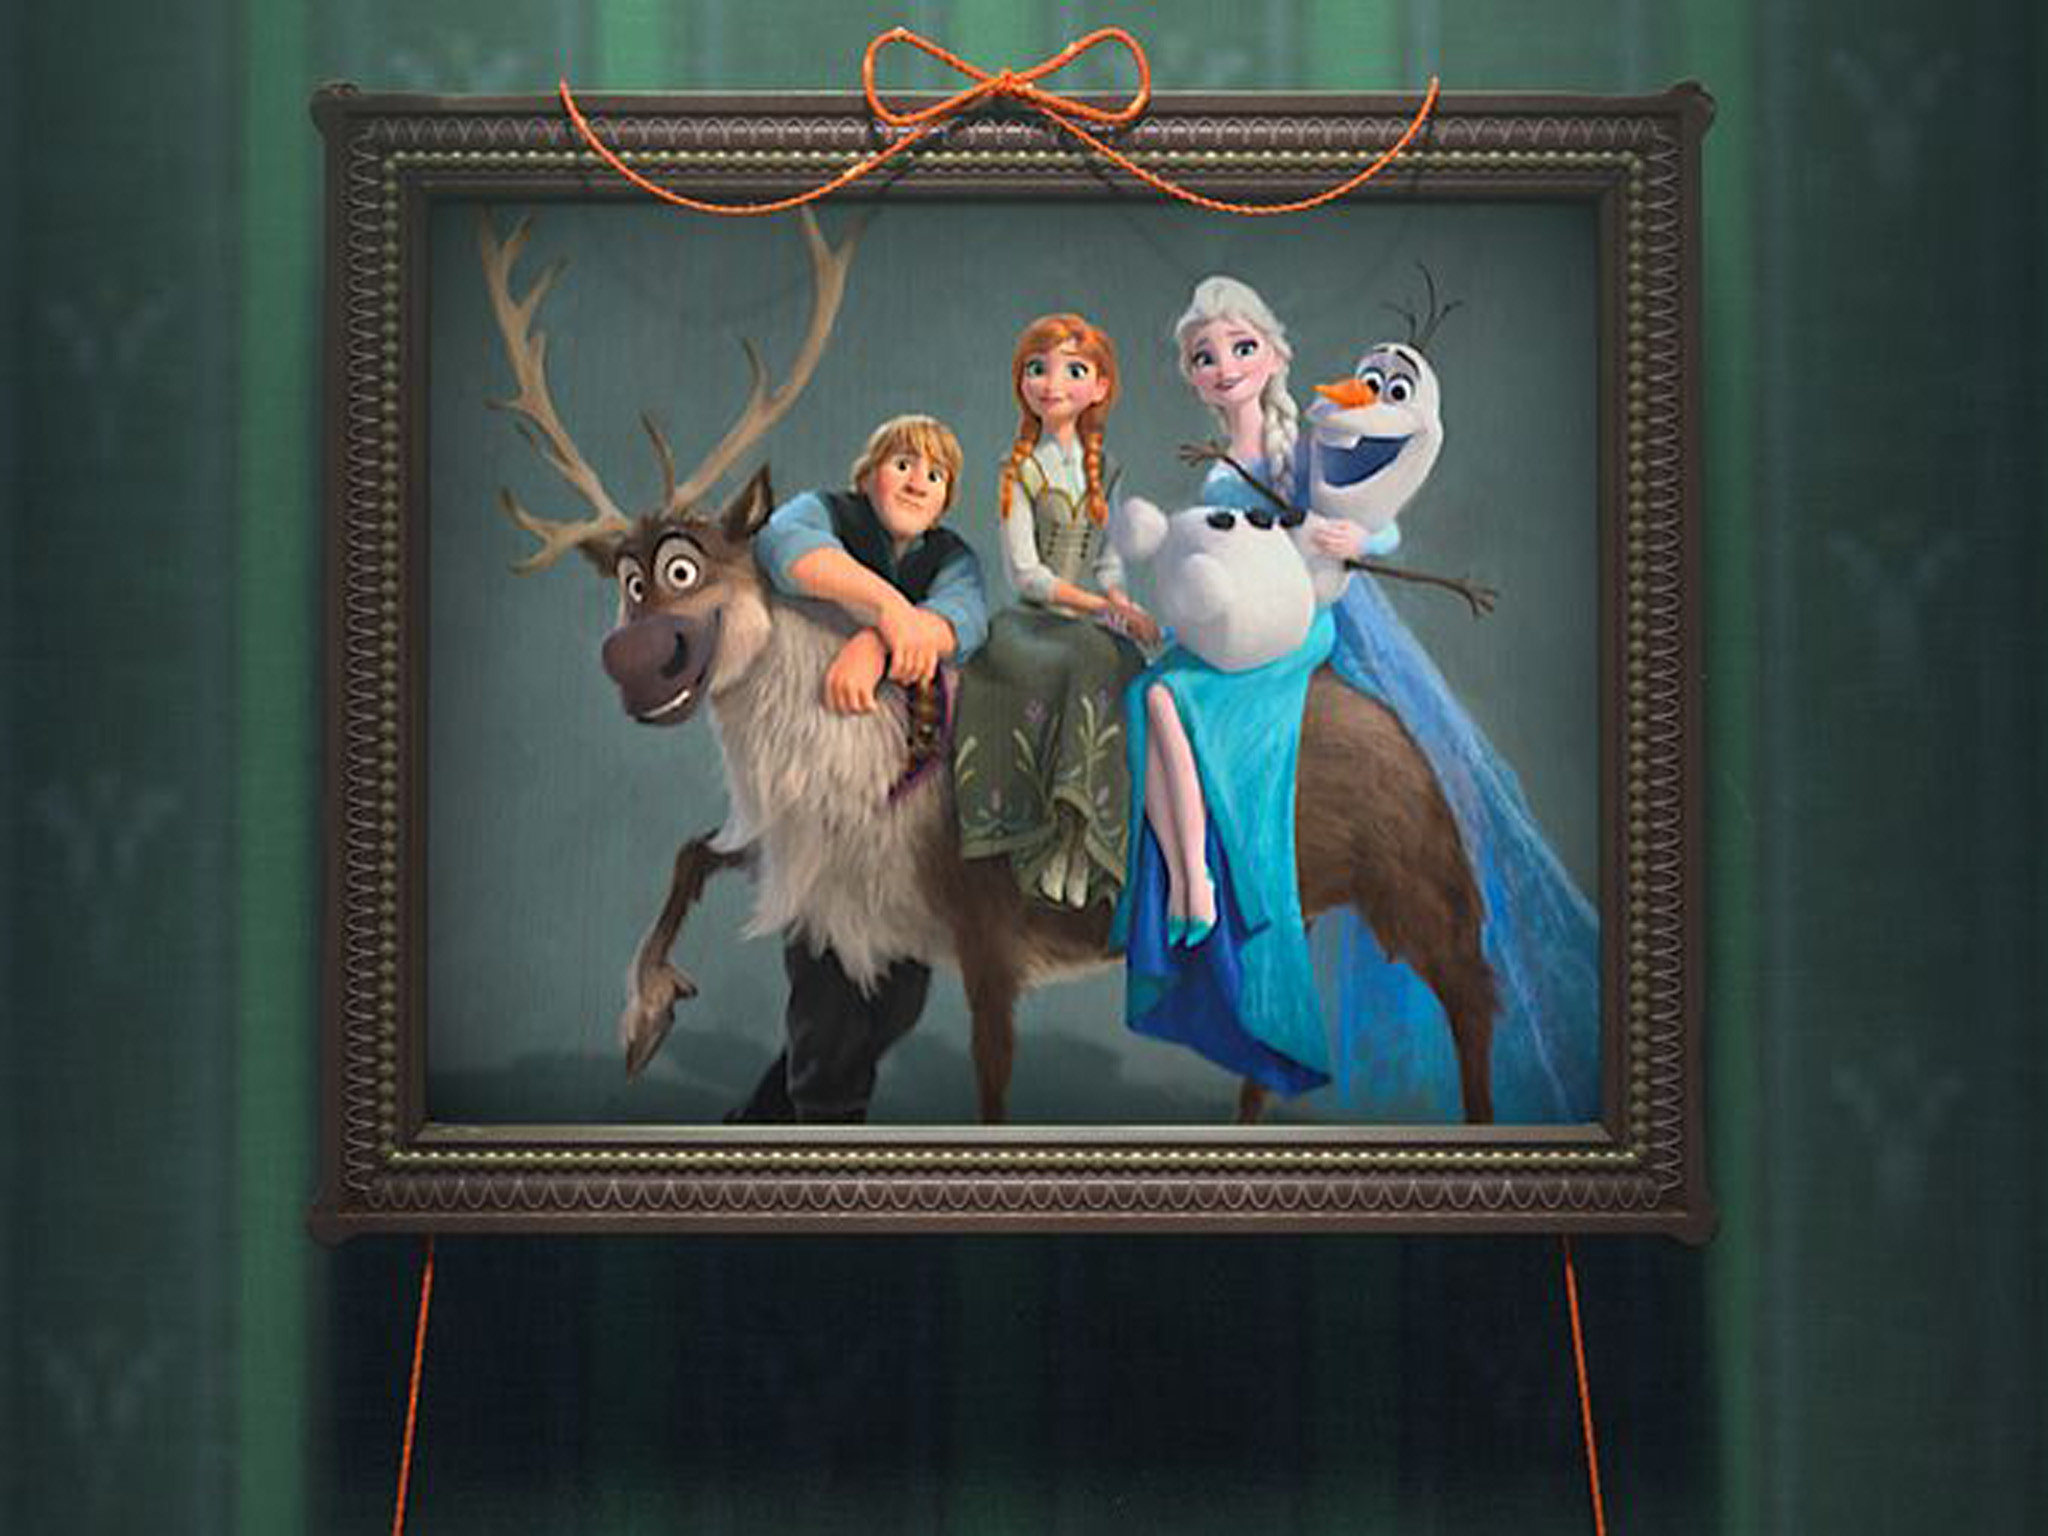 2048x1536 Frozen 2: See first pictures of Princess Elsa from Disney's short sequel Frozen  Fever | The Independent